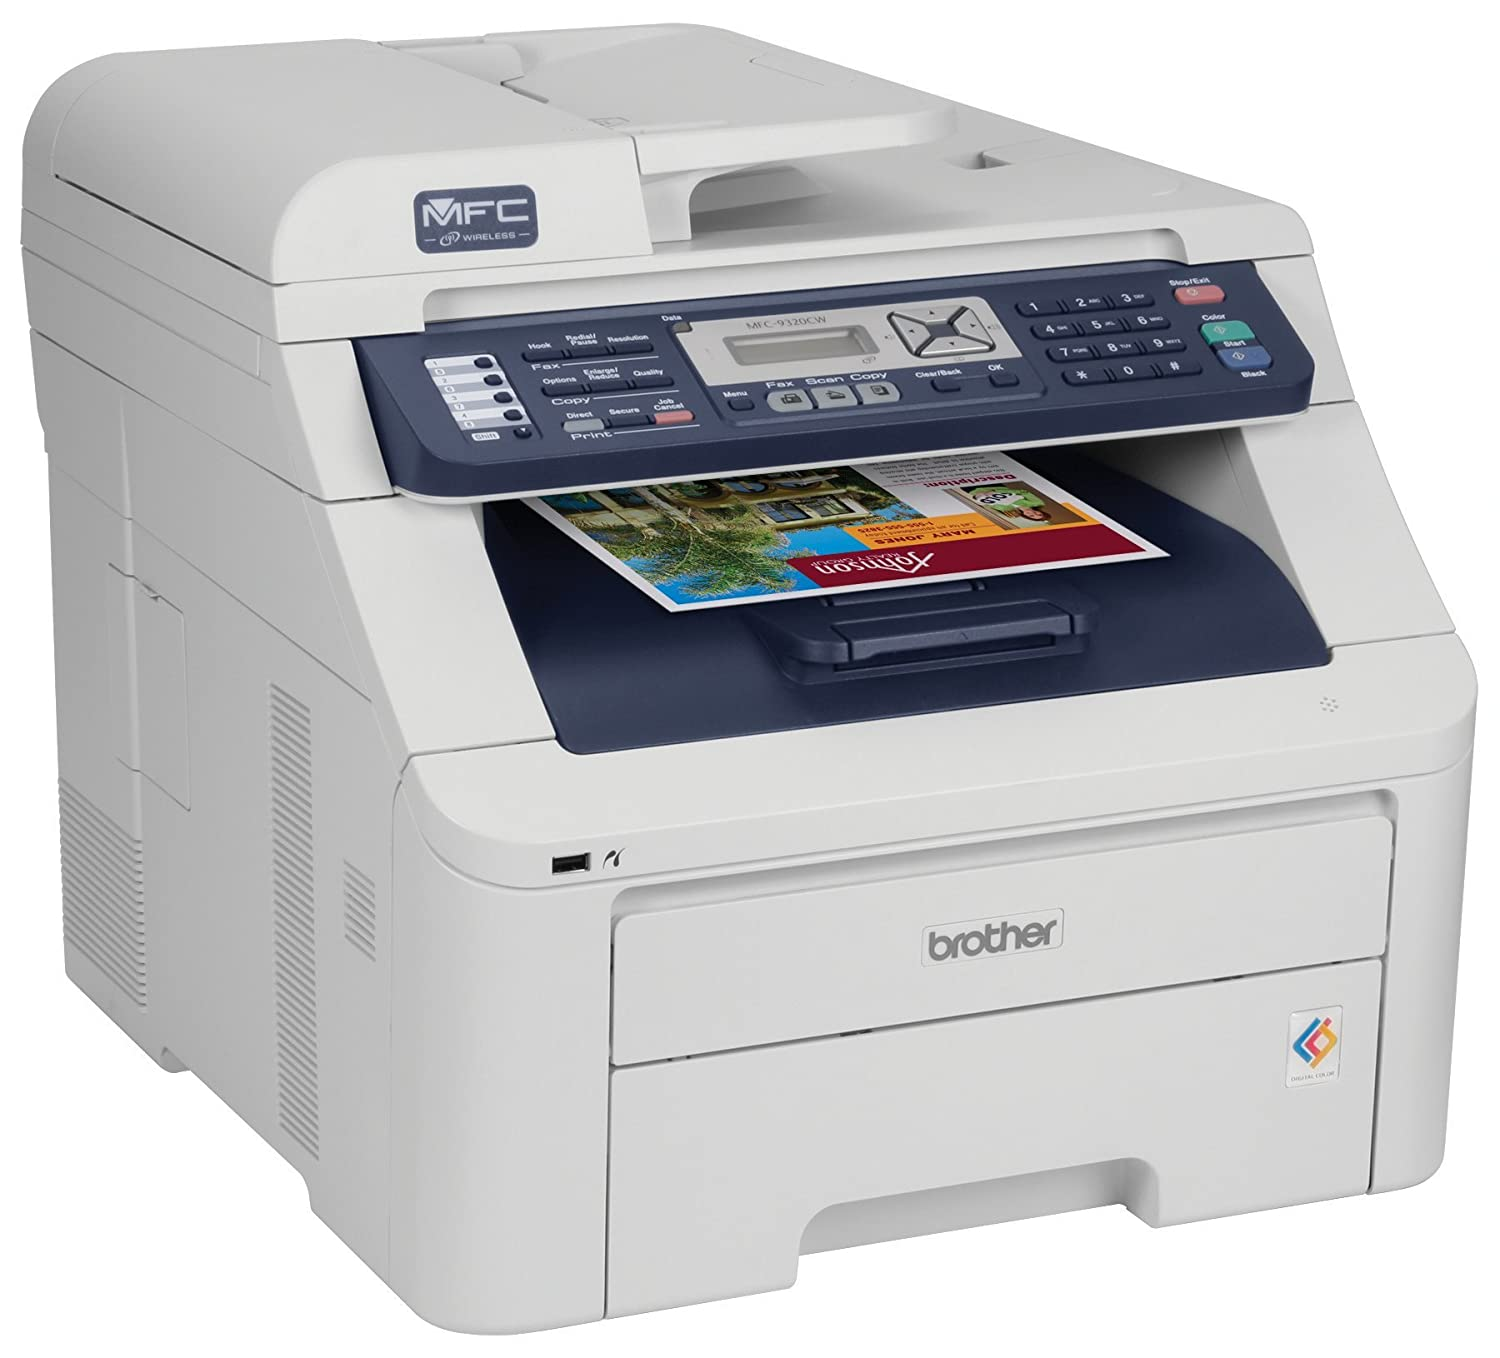 Brother MFC-210C CUPS Printer Drivers for Mac